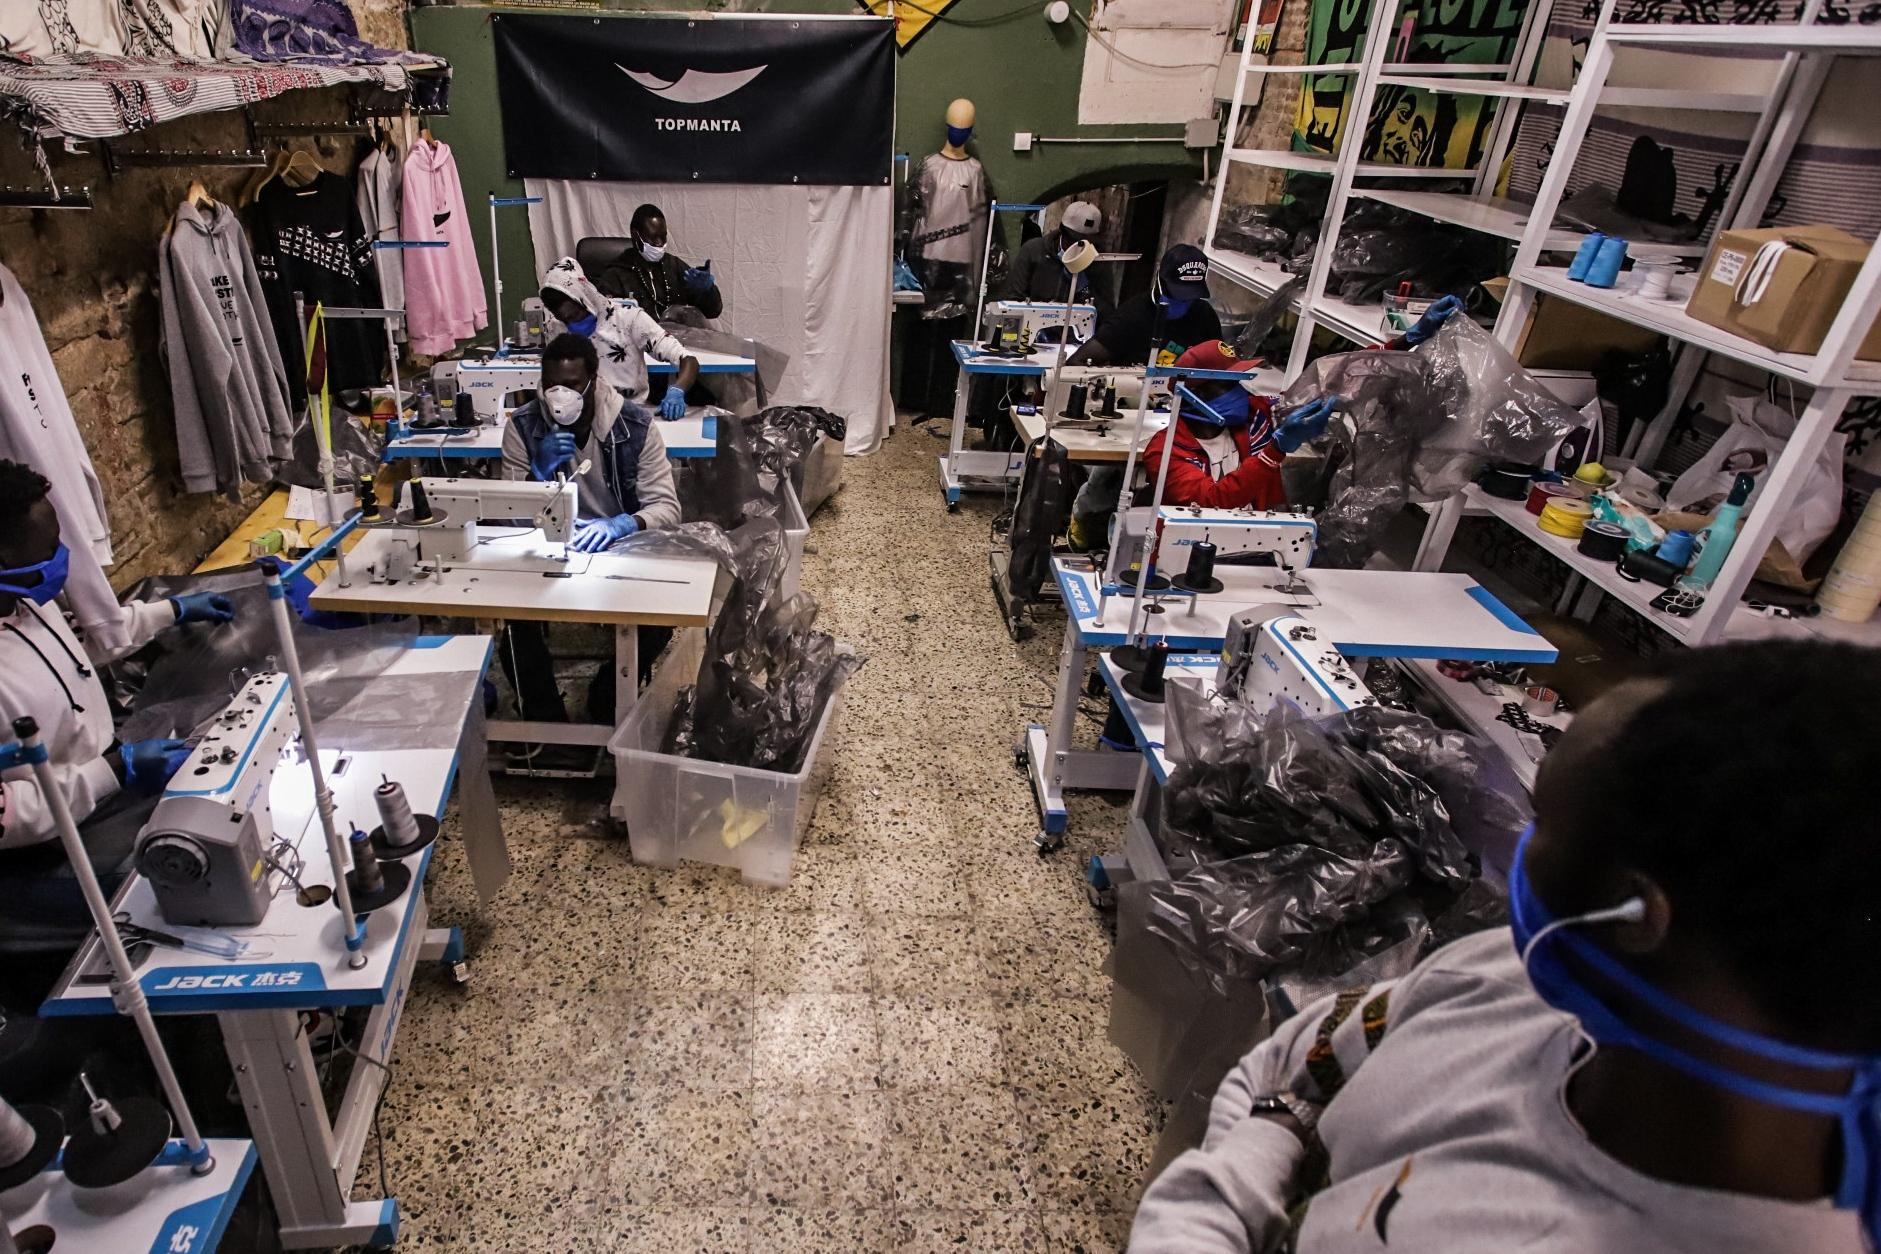 The collective, which has a clothing brand, will use its sewing machines to help in the fight against Covid-19. All workers are following the necessary preventive measures, such as adapting the workshop space so that the minimum mandatory distance of 1.5 meters is maintained between each worker.